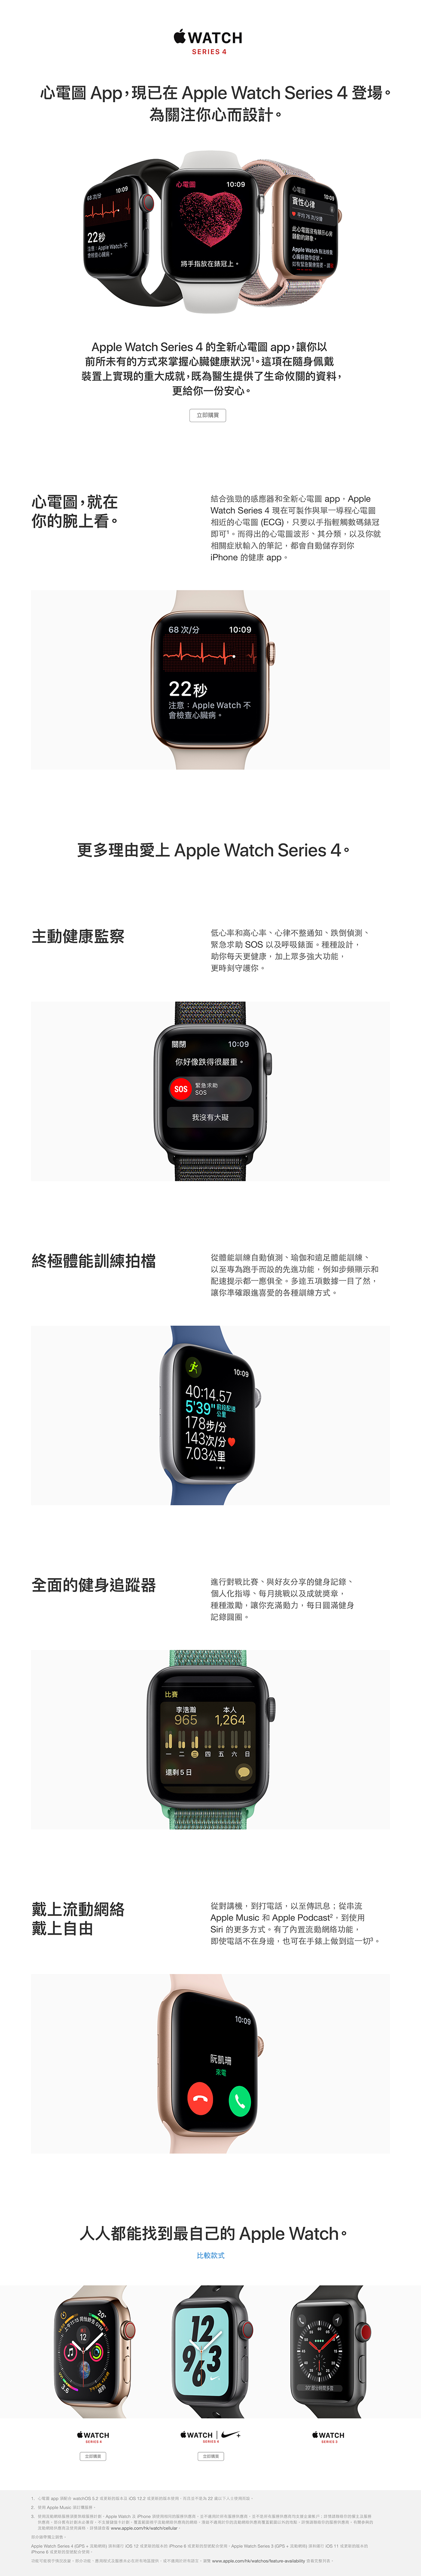 7468-AppleWatch-productpage980-tc